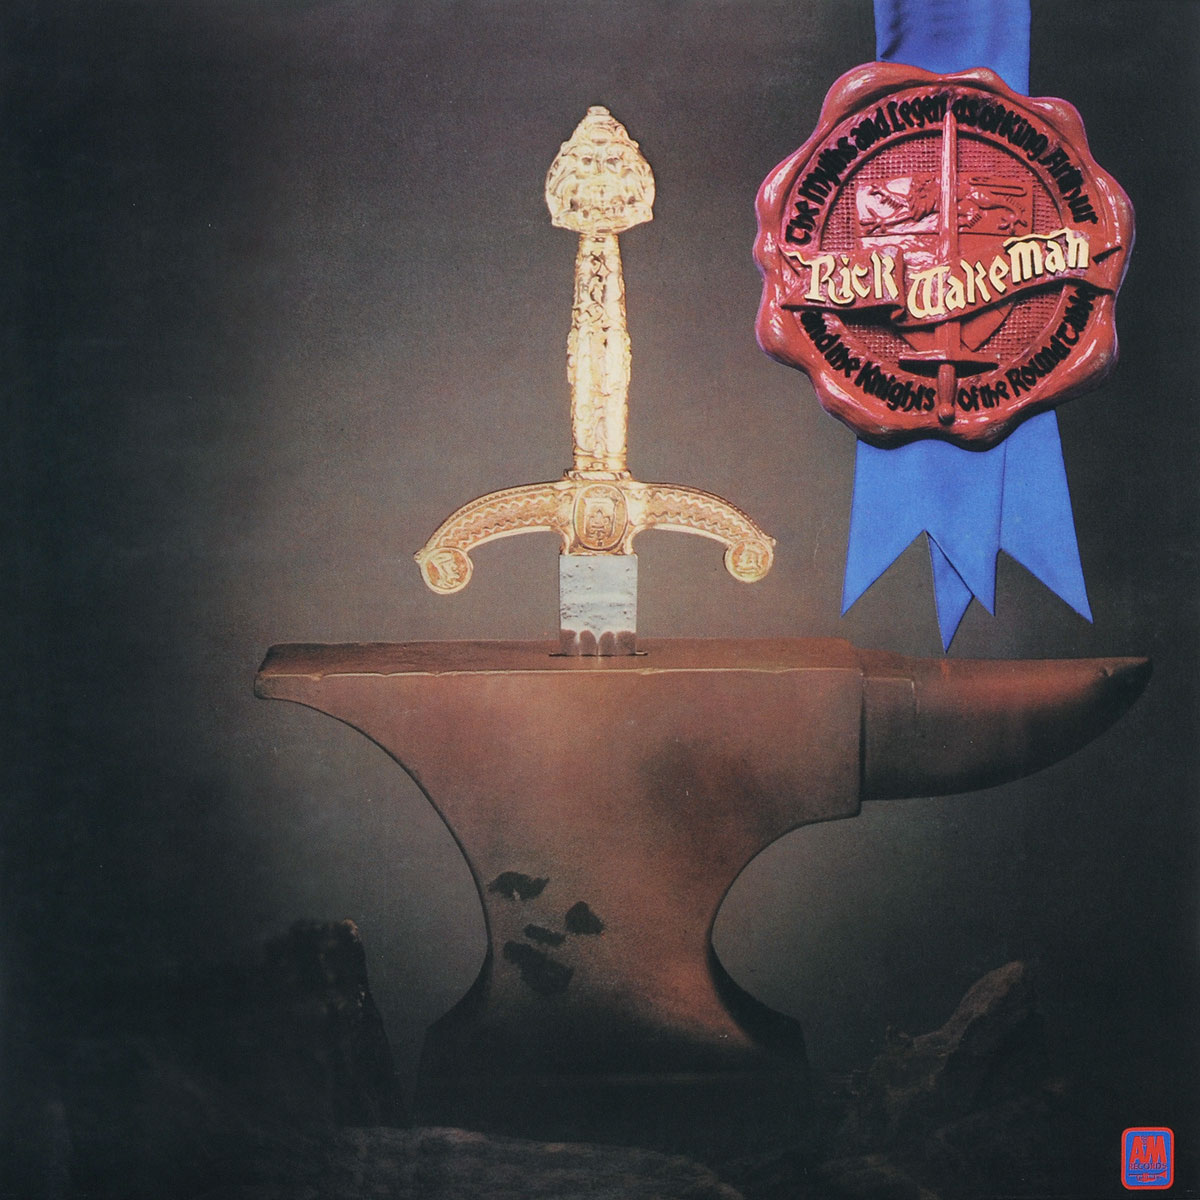 Рик Уэйкман Rick Wakeman. The Myths And Legends Of King Arthur And The Knights Of The Round Table (LP) b b king king of the blues lp